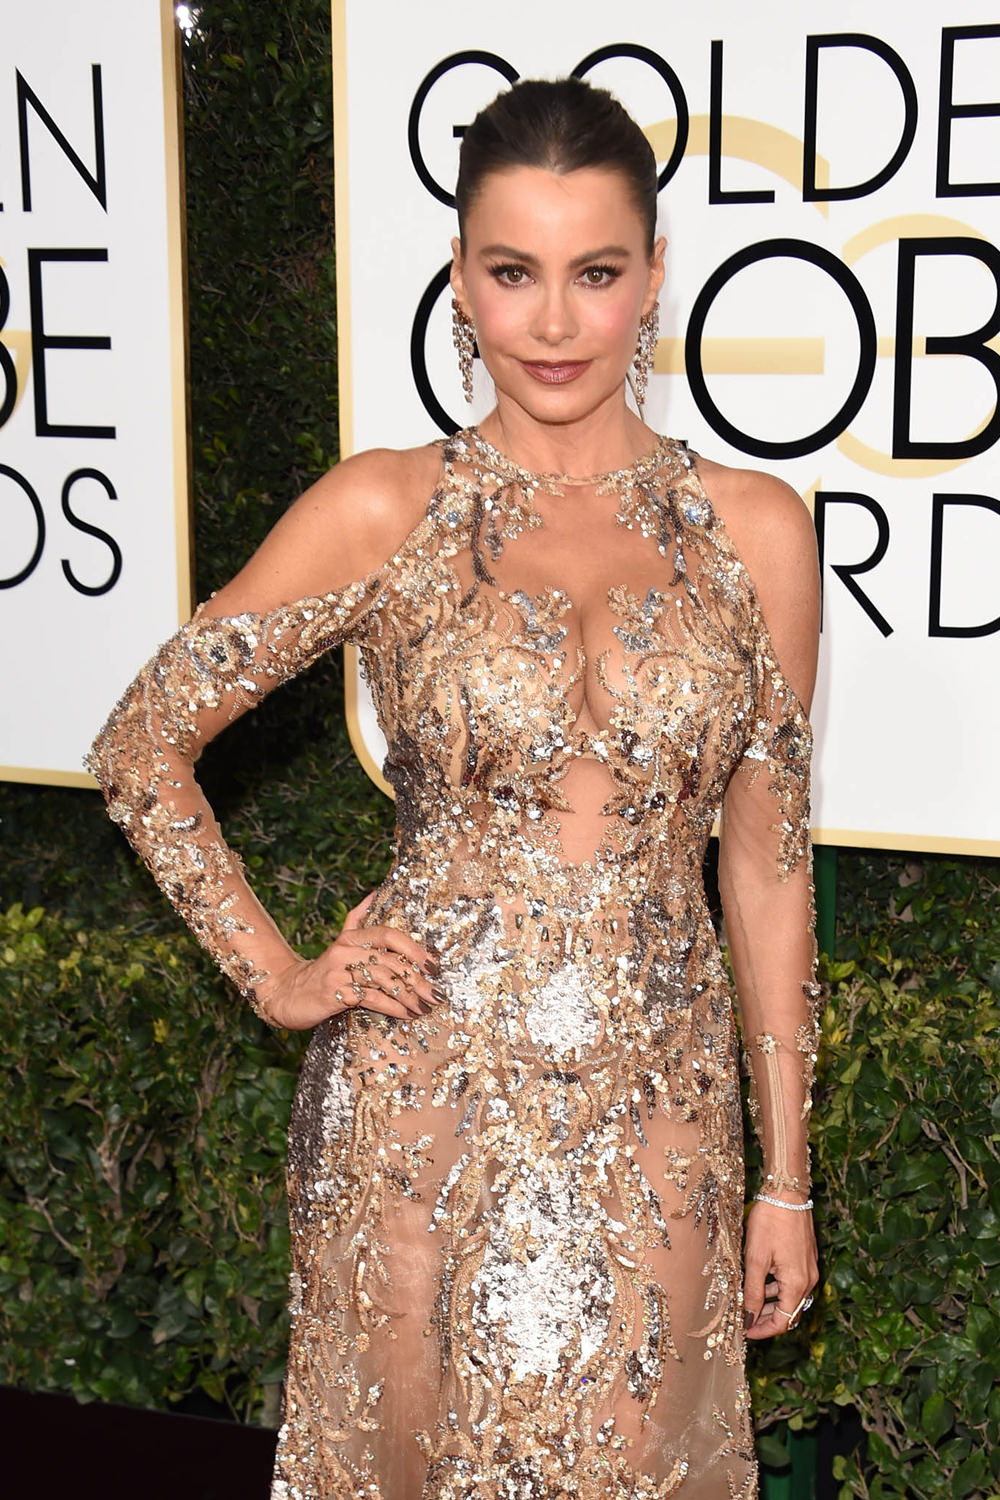 sofia-vergara-modern-family-2017-golden-globe-awards-red-carpet-fashion-zuhair-murad-couture-tom-lorenzo-site-1